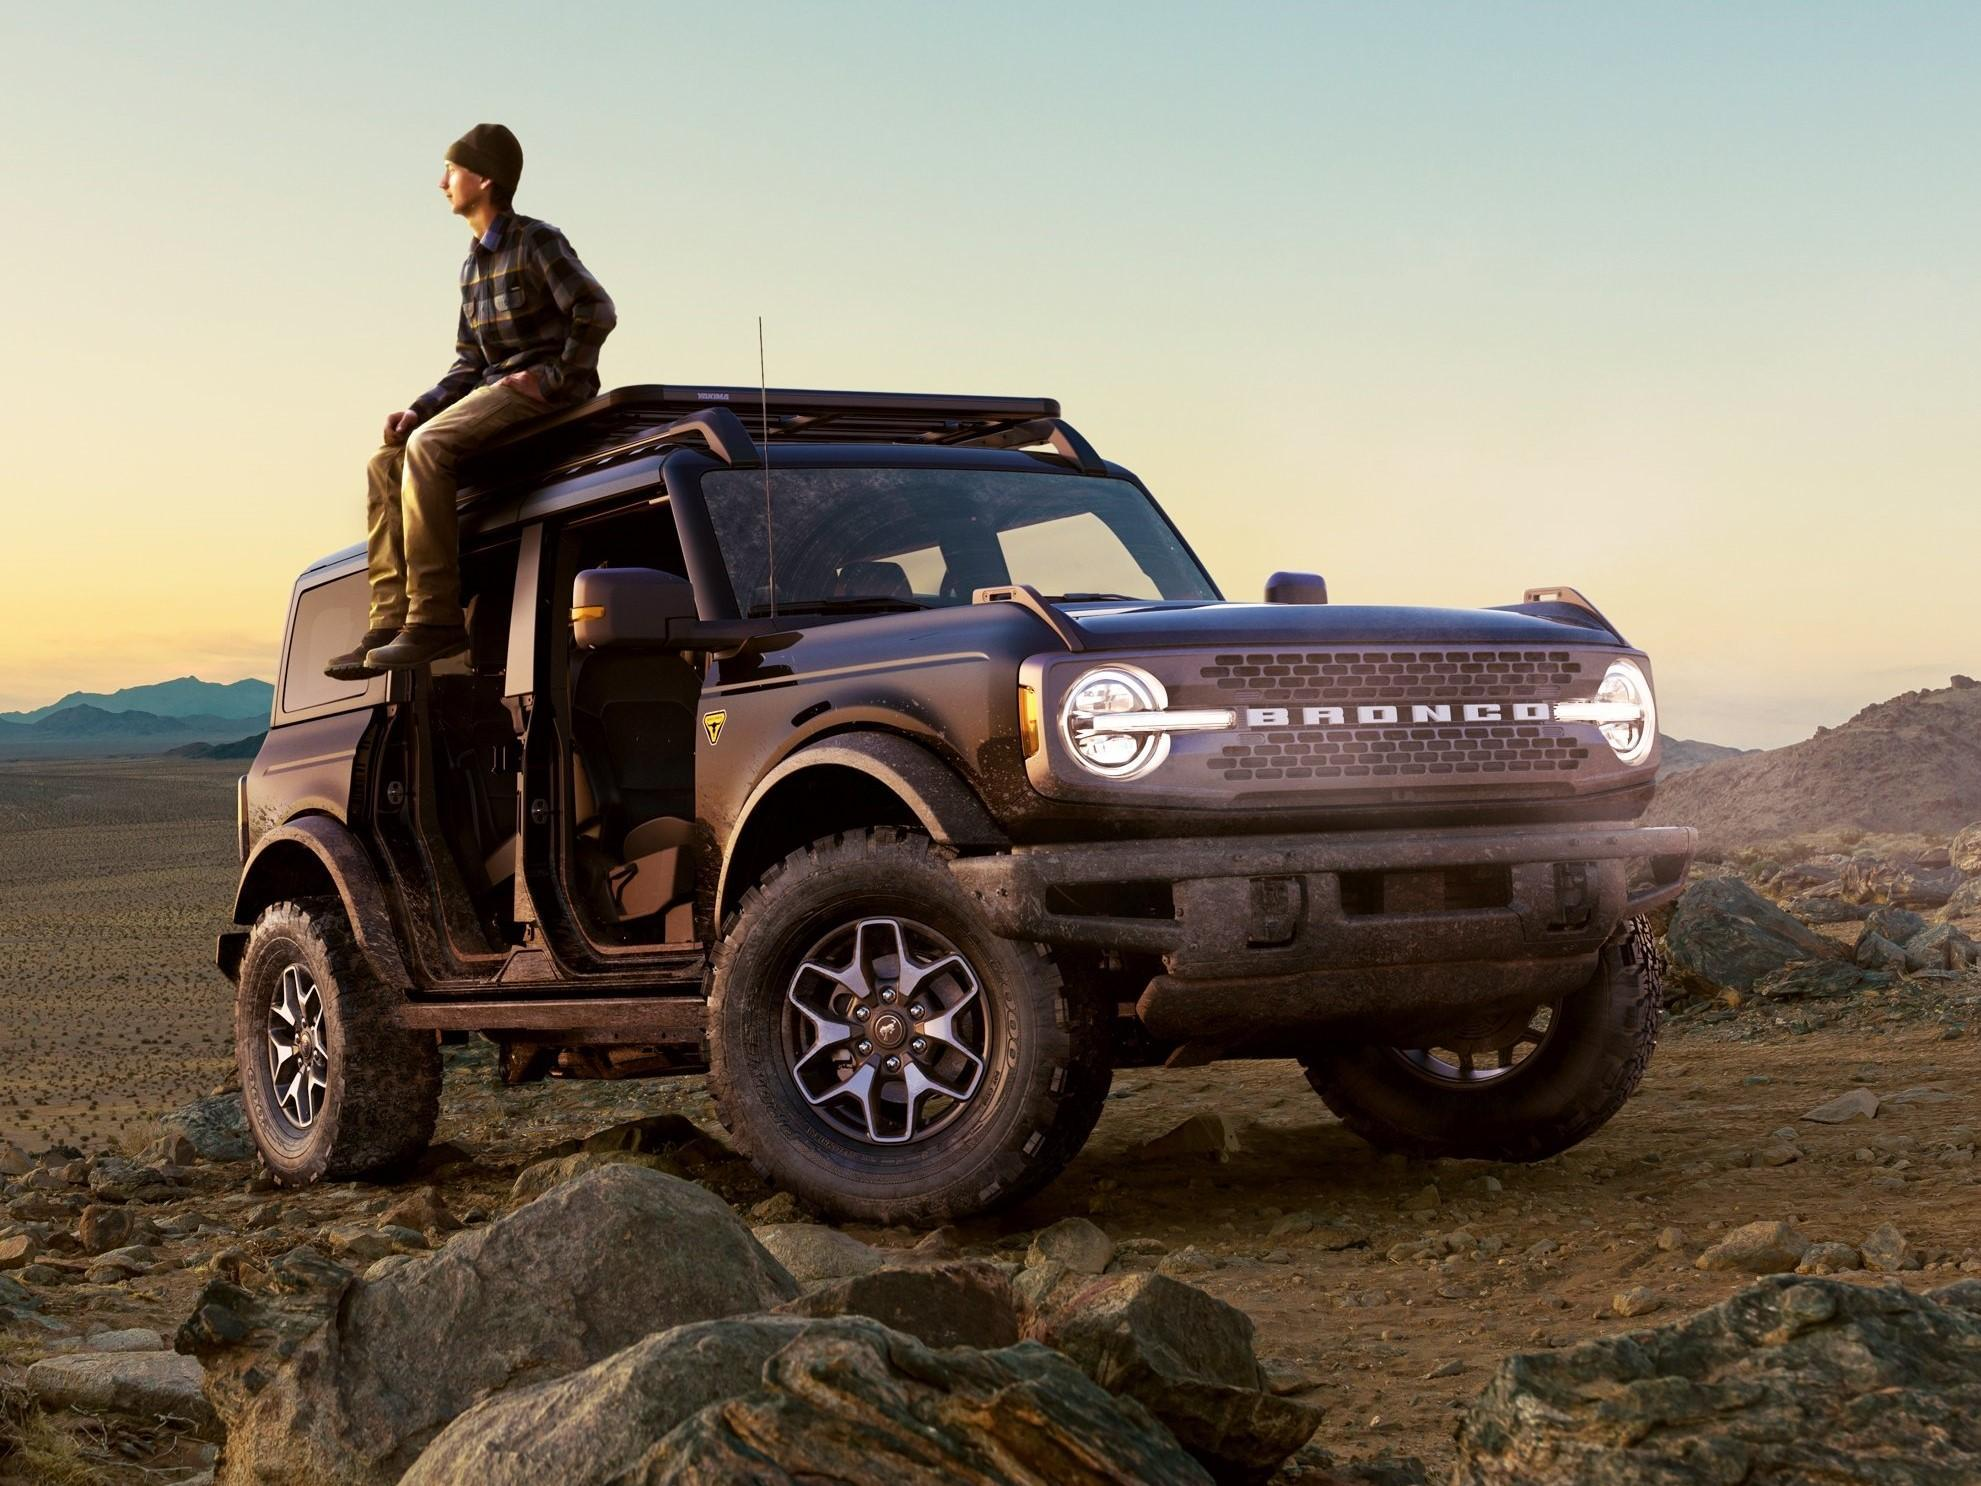 2021 Ford Bronco in the Badlands